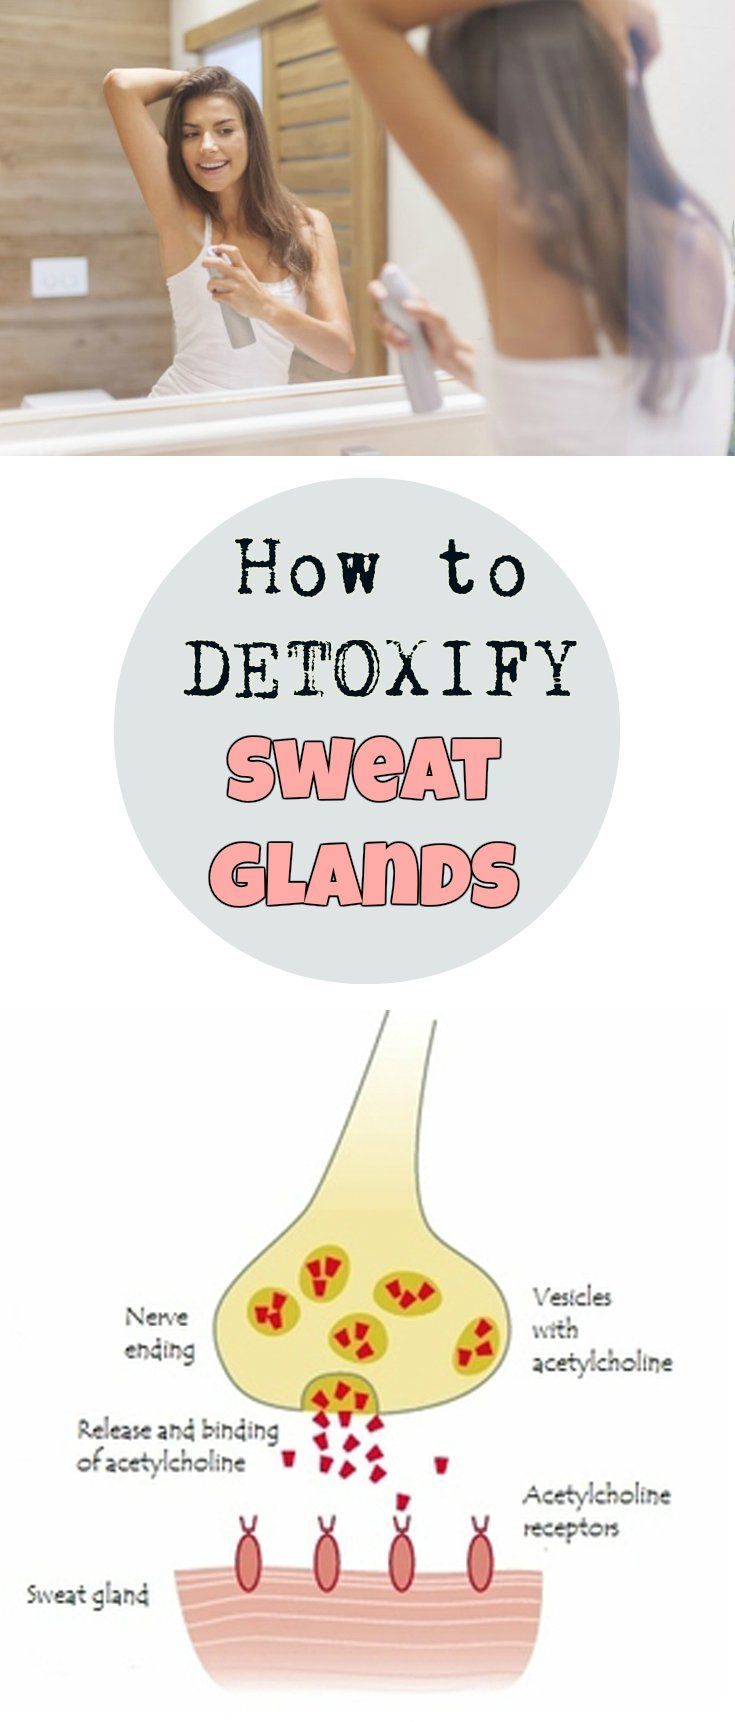 Learn how to detoxify your sweat glands.